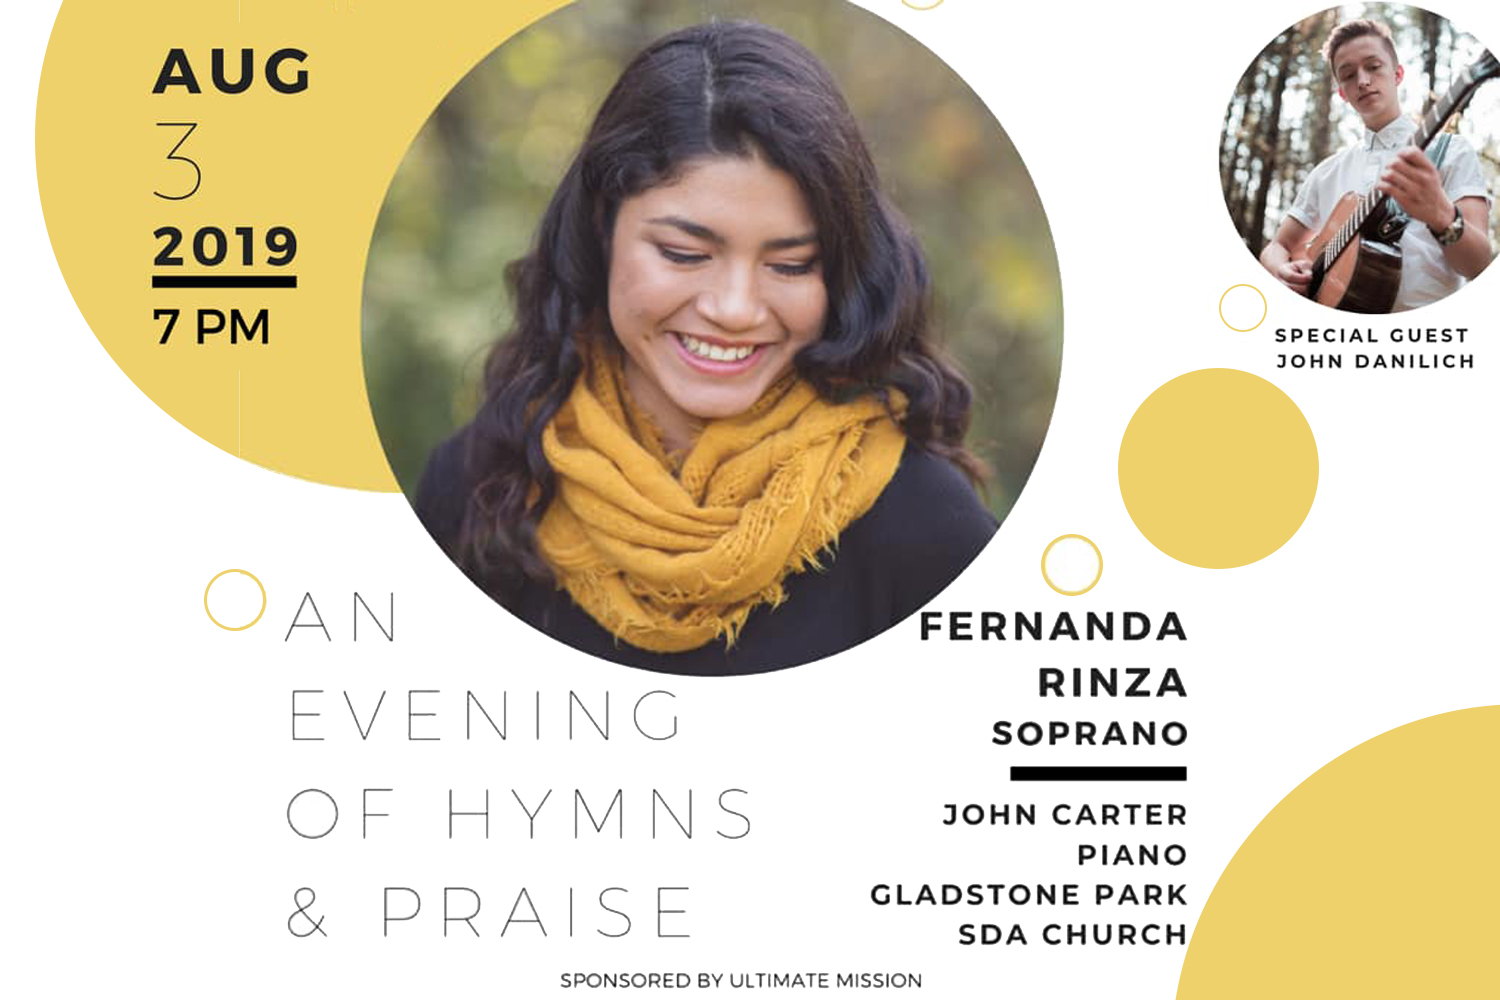 An Evening of Hymns & Praise